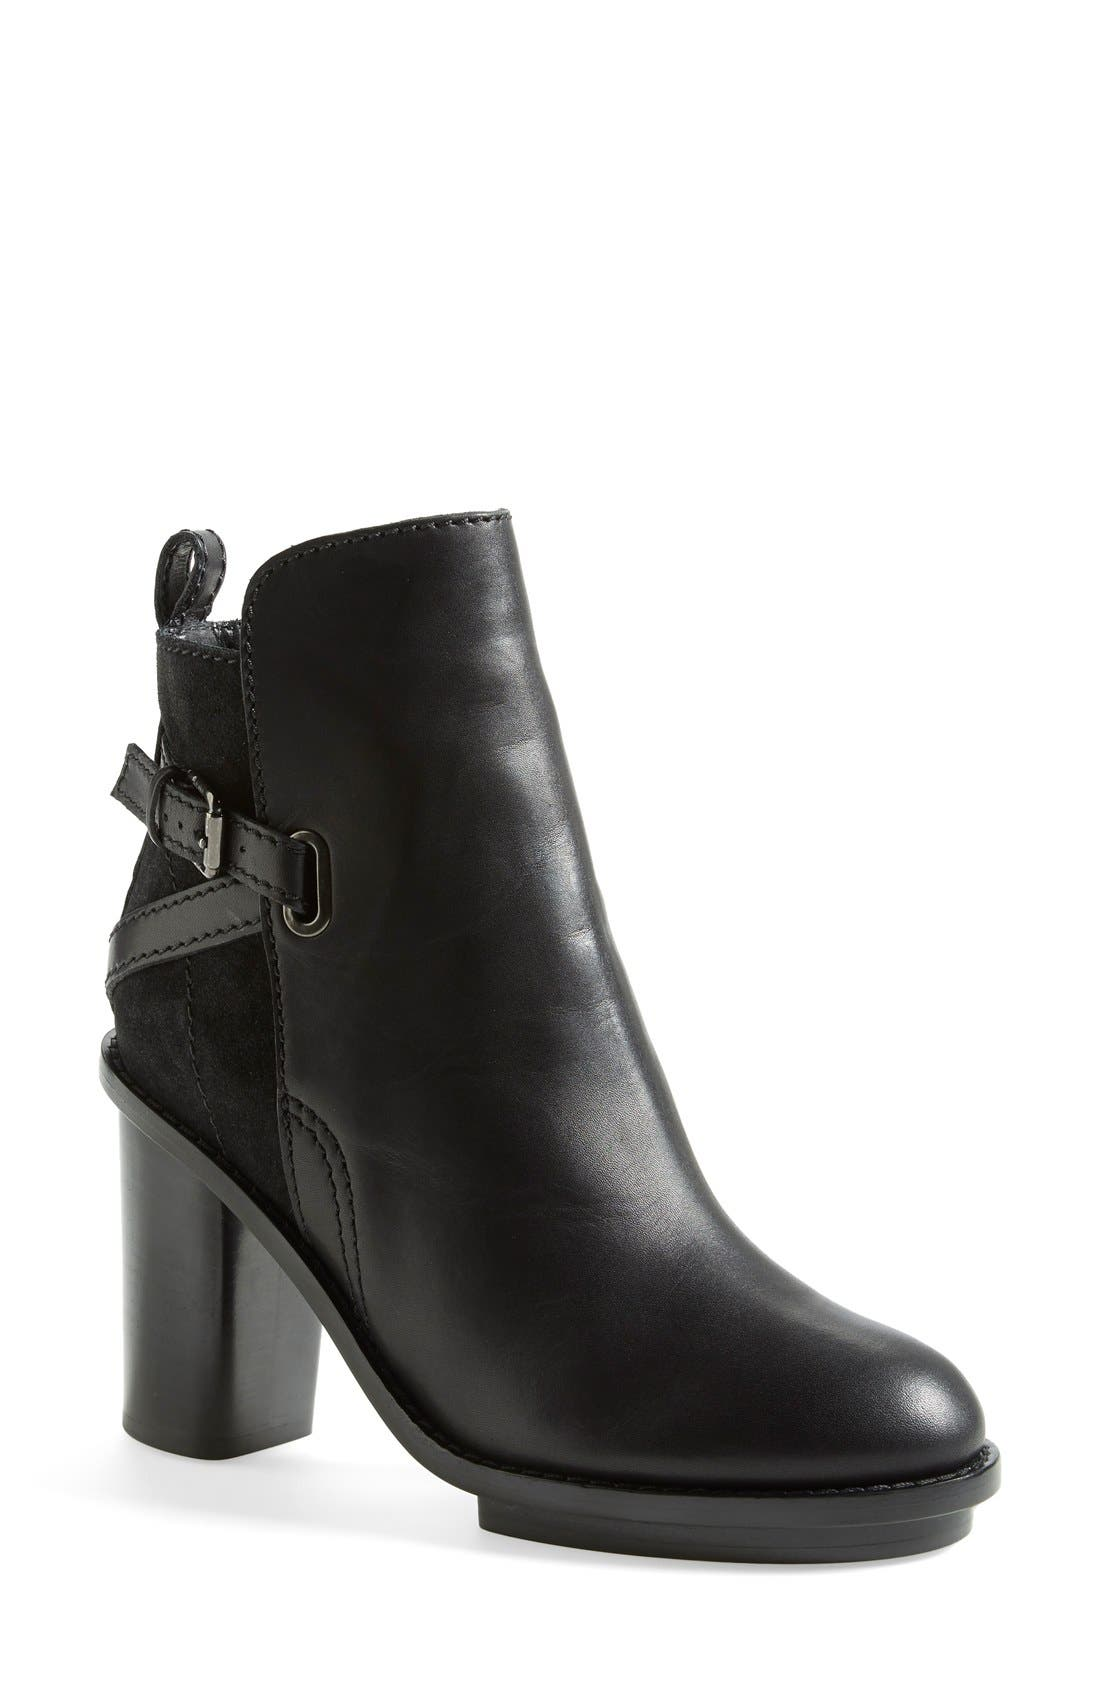 Main Image - Acne Studios 'Cypress' Leather & Suede Bootie (Women)